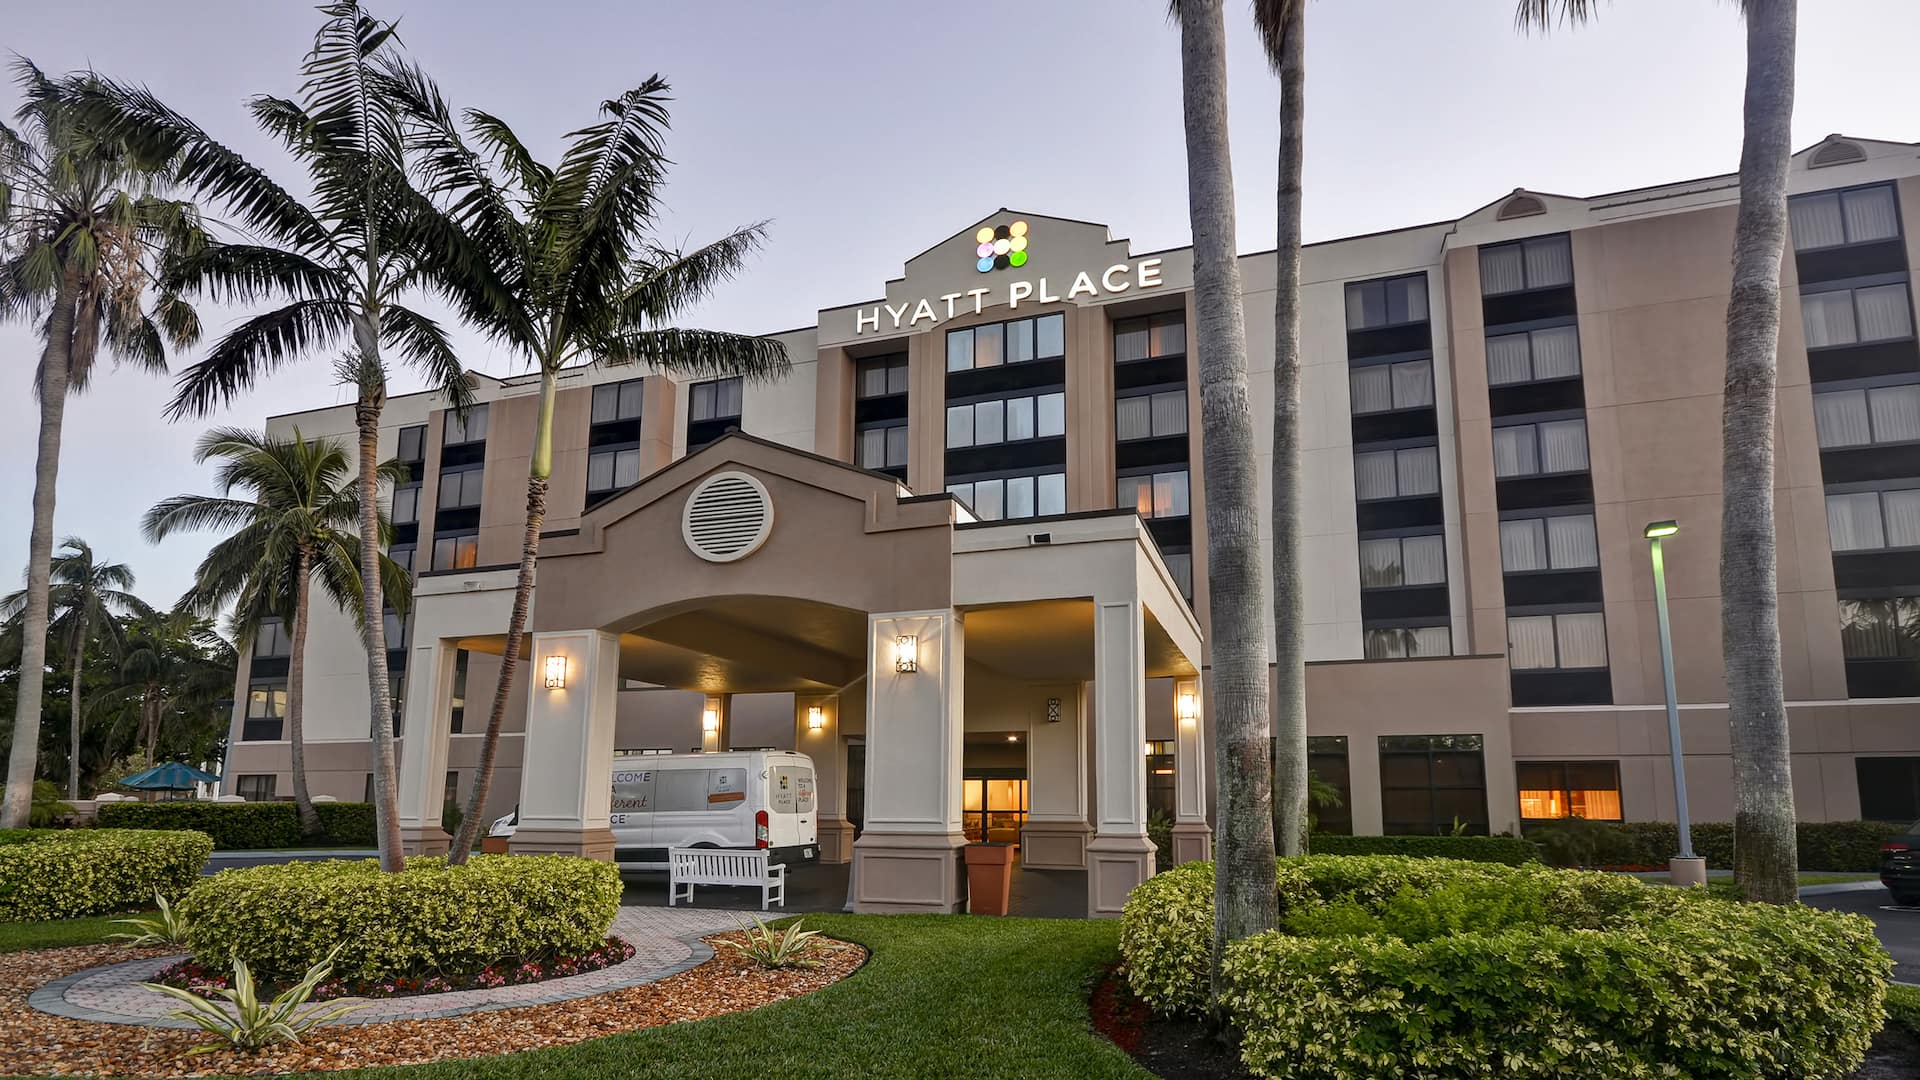 Hyatt Place Miami Airport-West / Doral Exterior at dusk